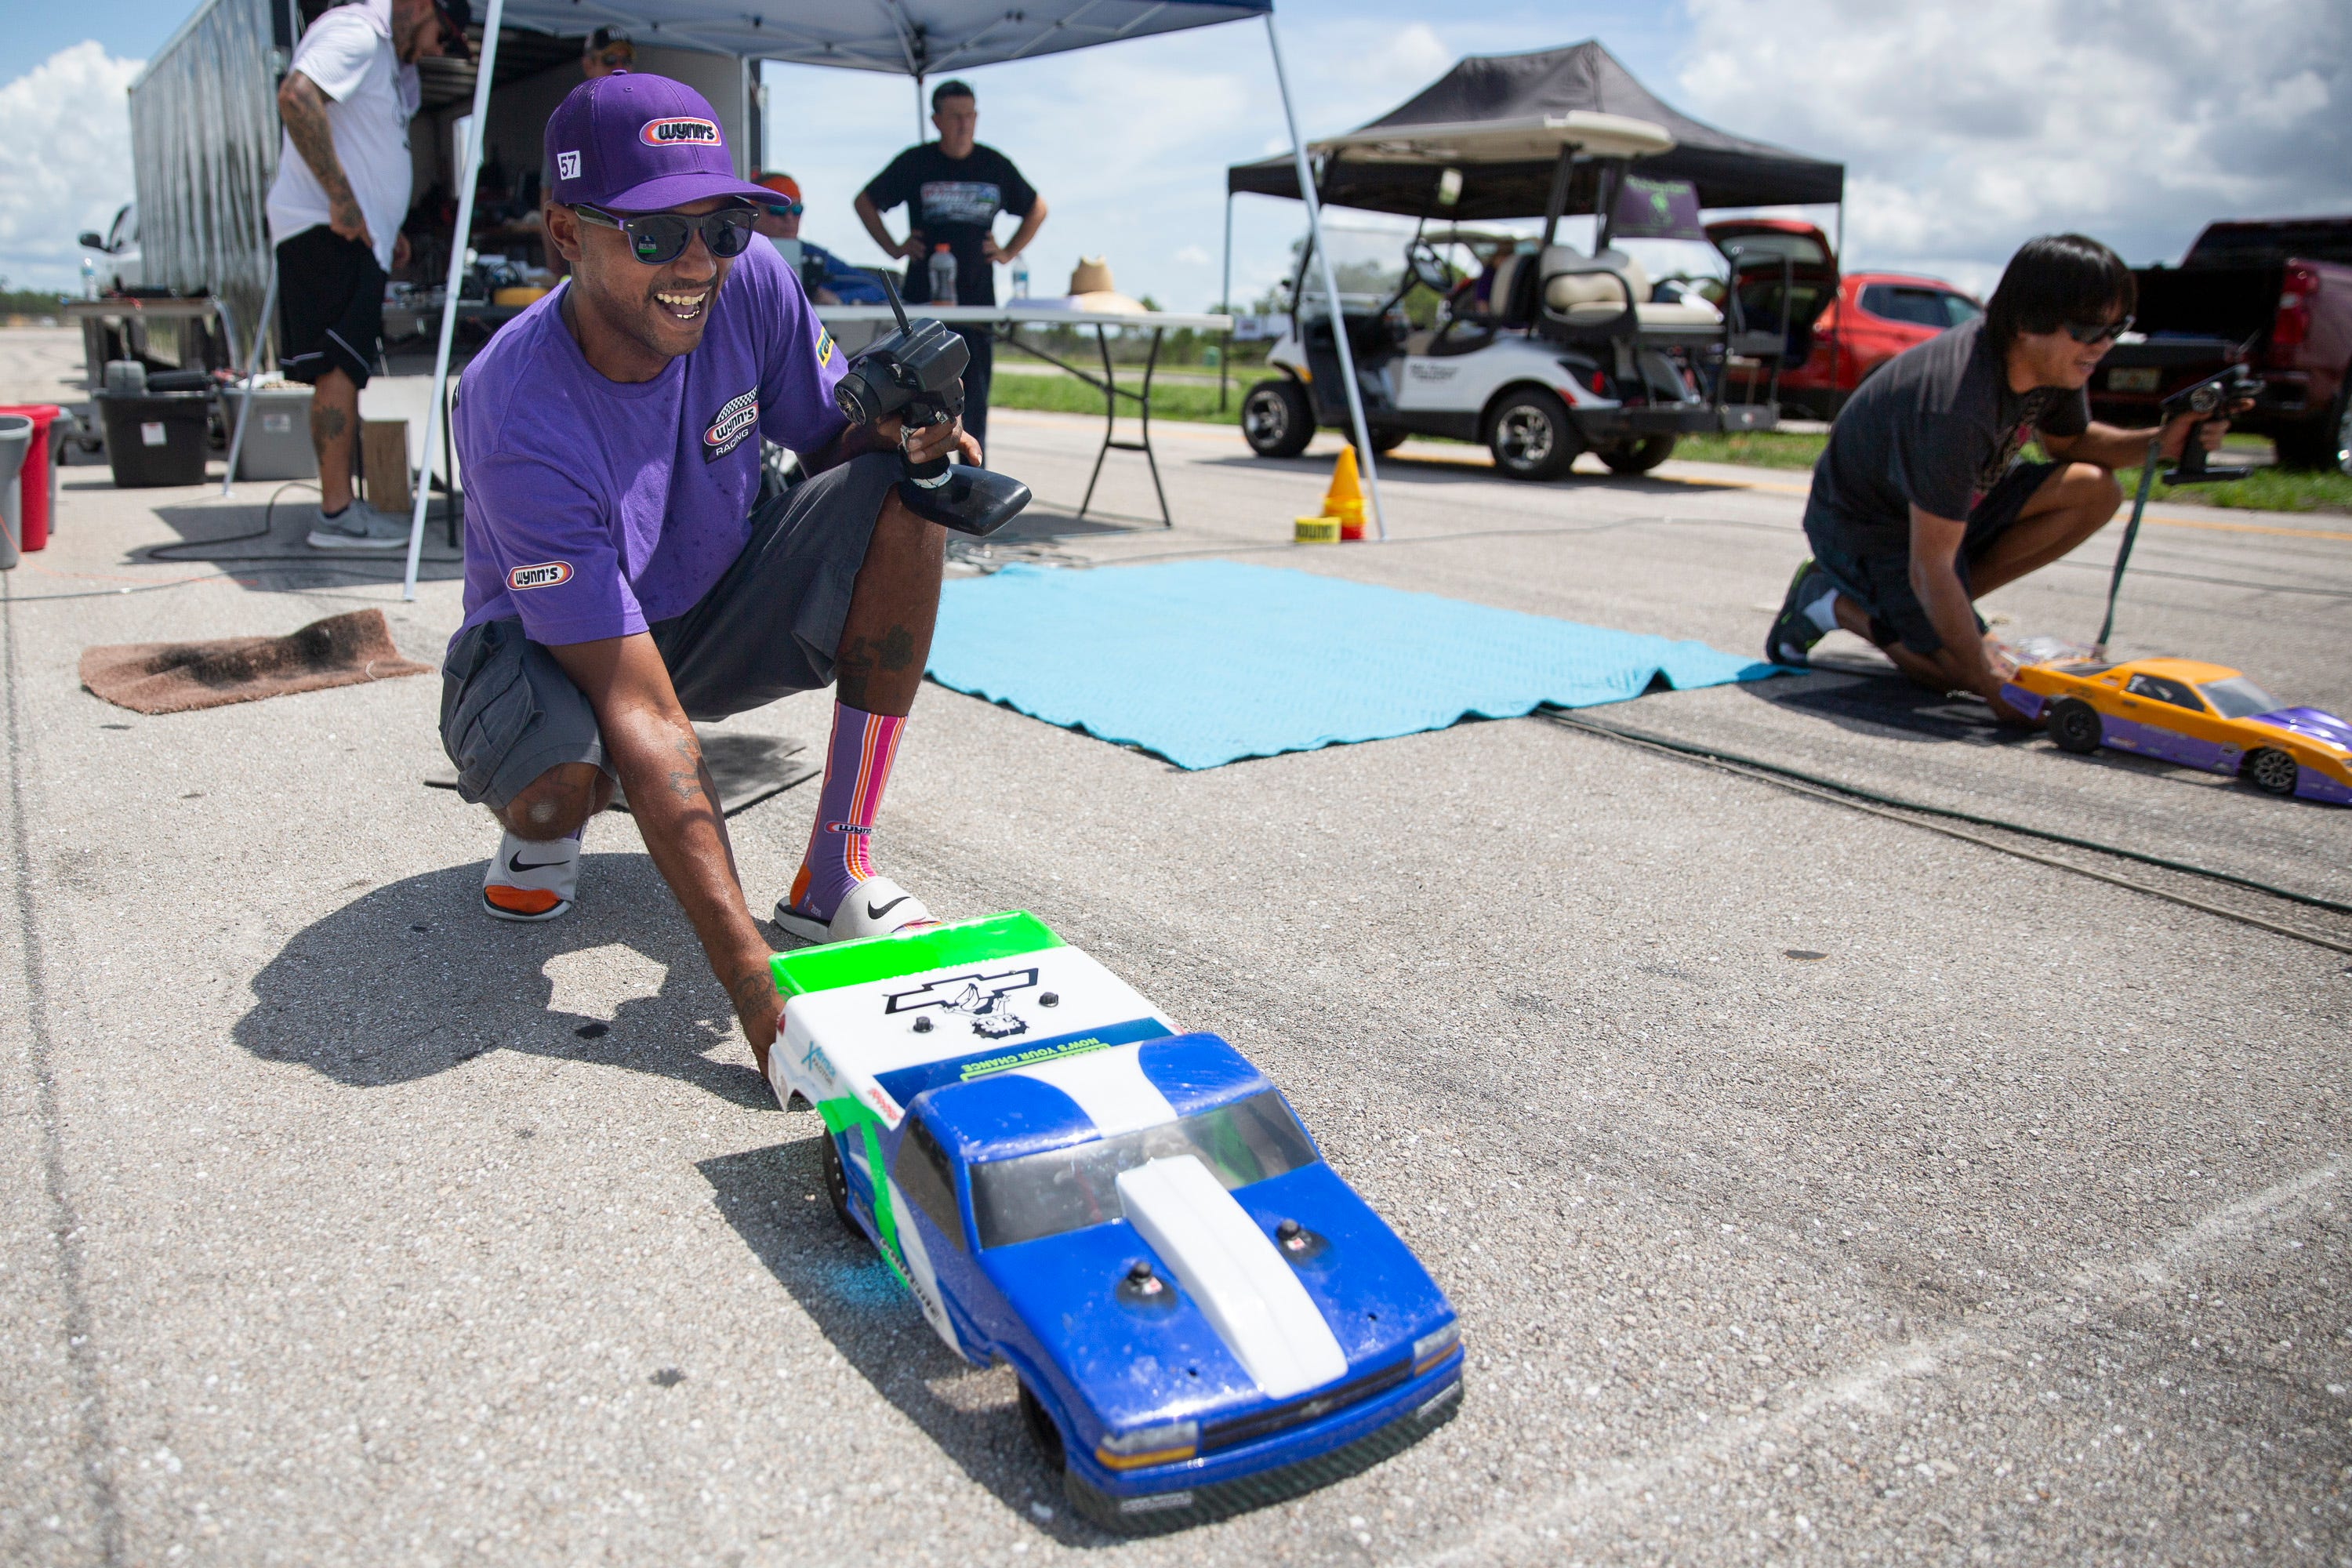 RC racing popularity in Lee, Collier, Charlotte zips up, fueled by COVID-19 and the economy 3